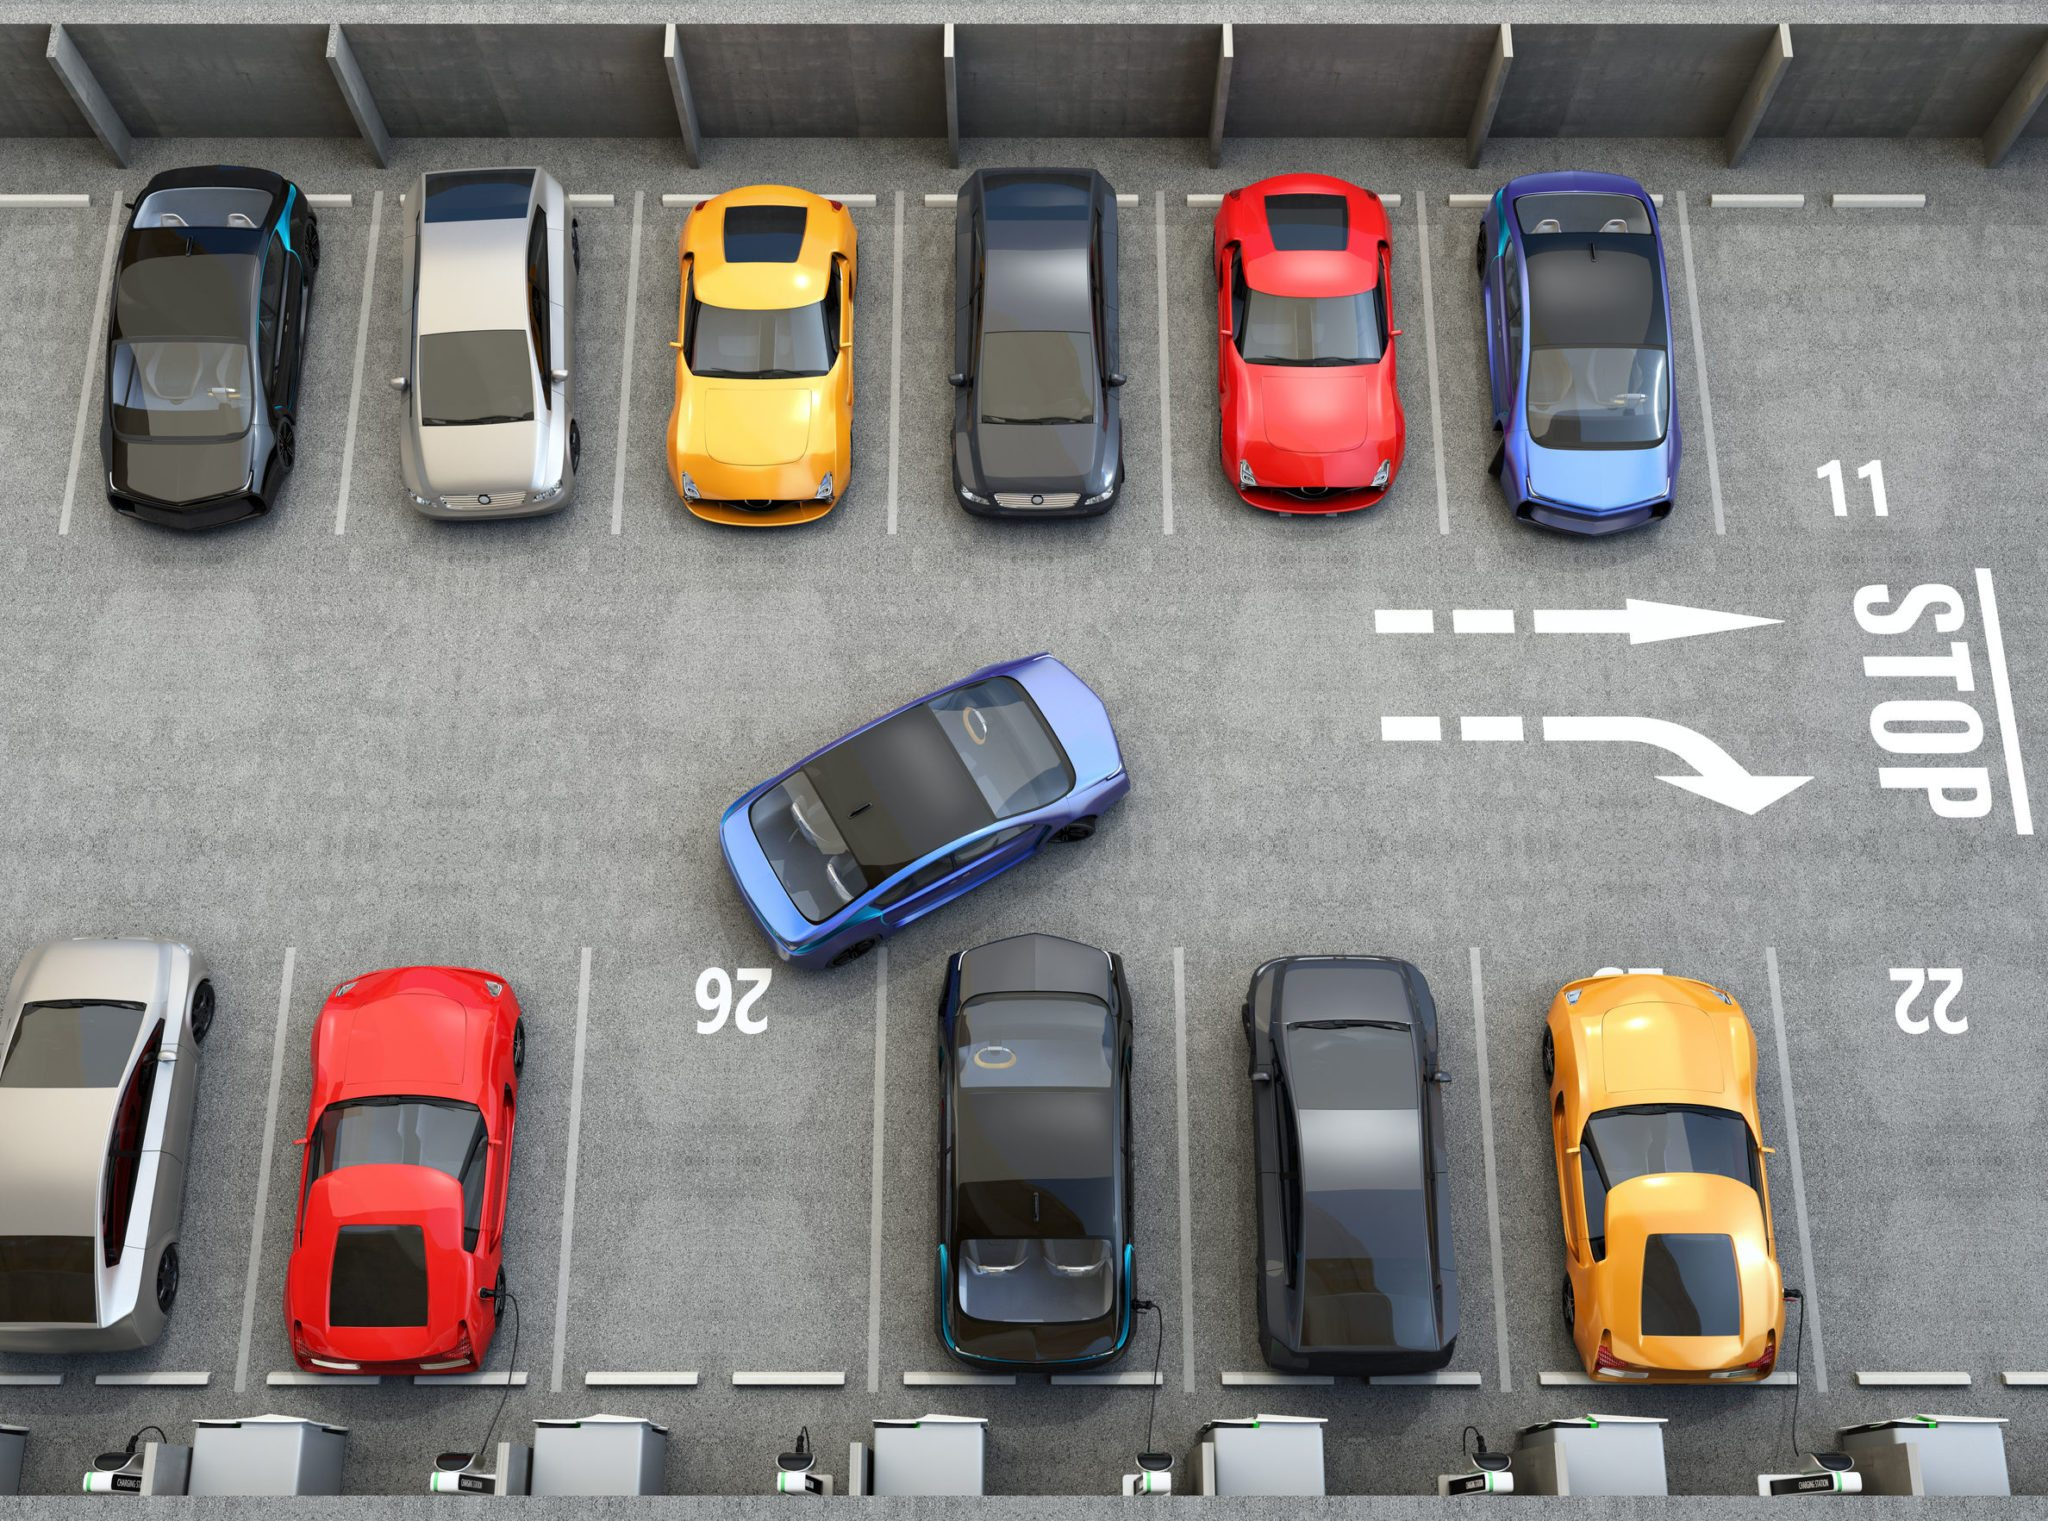 Enterprise Car Share Number >> Smart parking is emerging as a key IoT use case